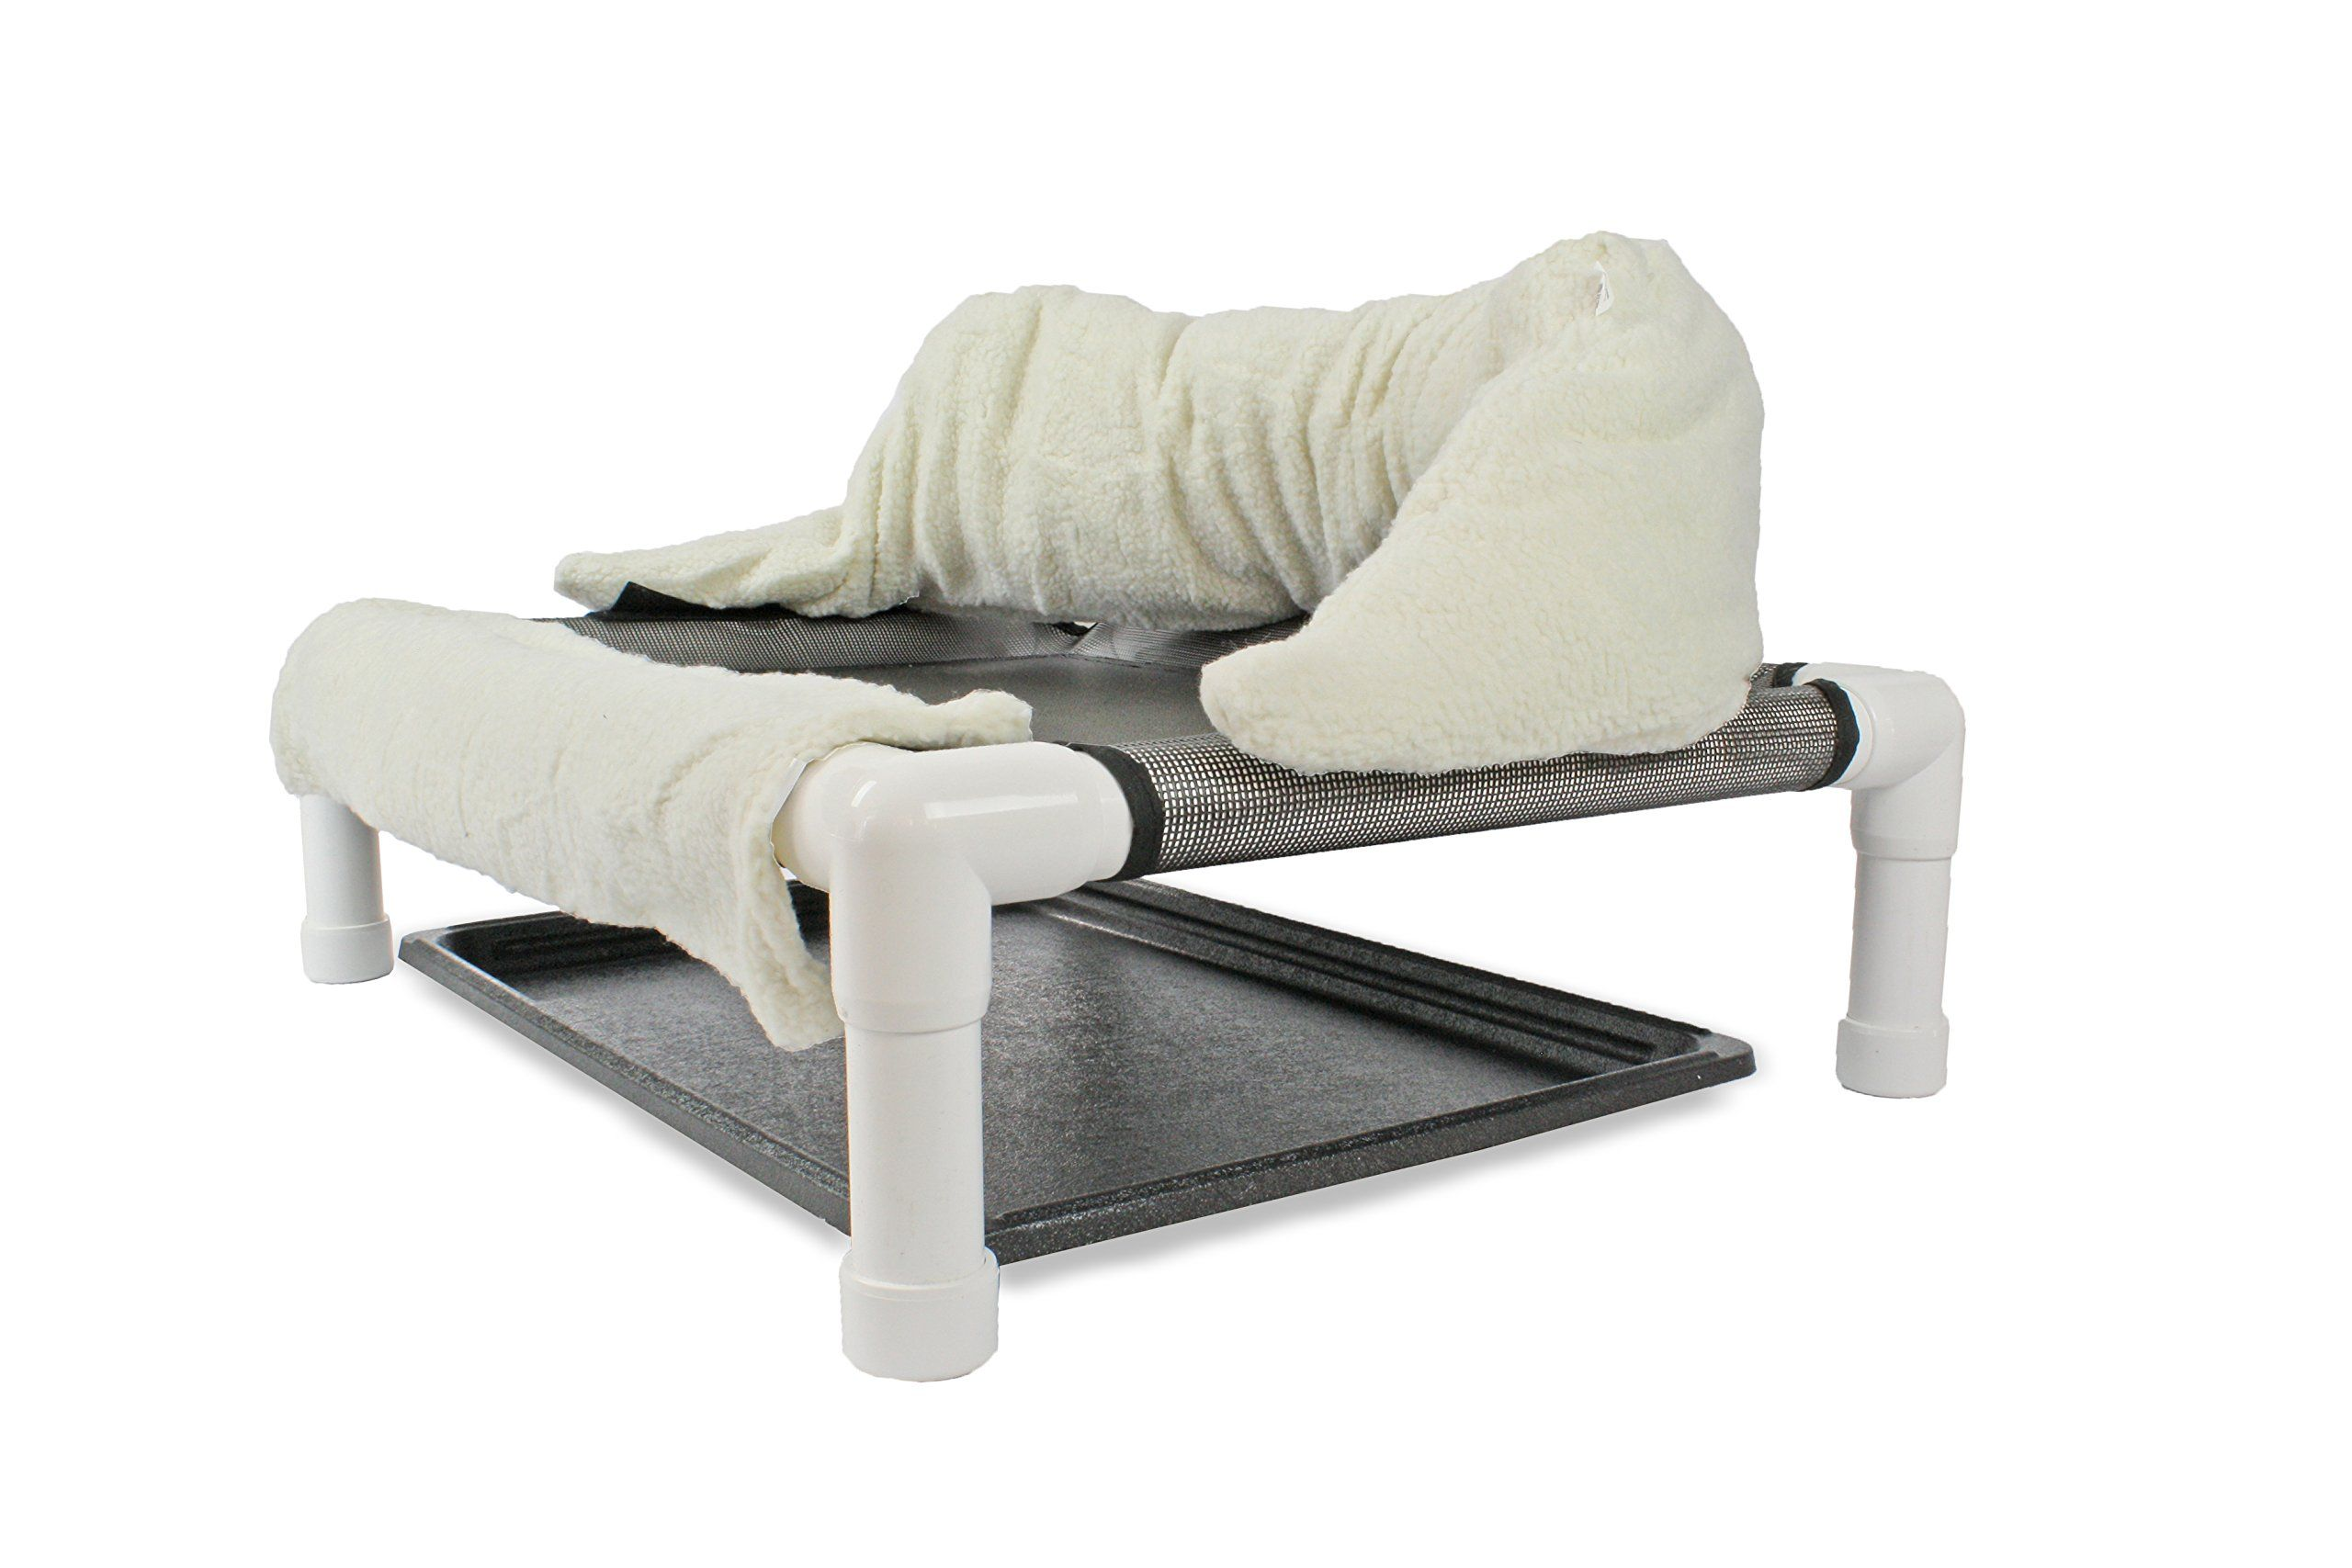 Elevated Bed For Incontinent Dogs And Other Pets >>> You